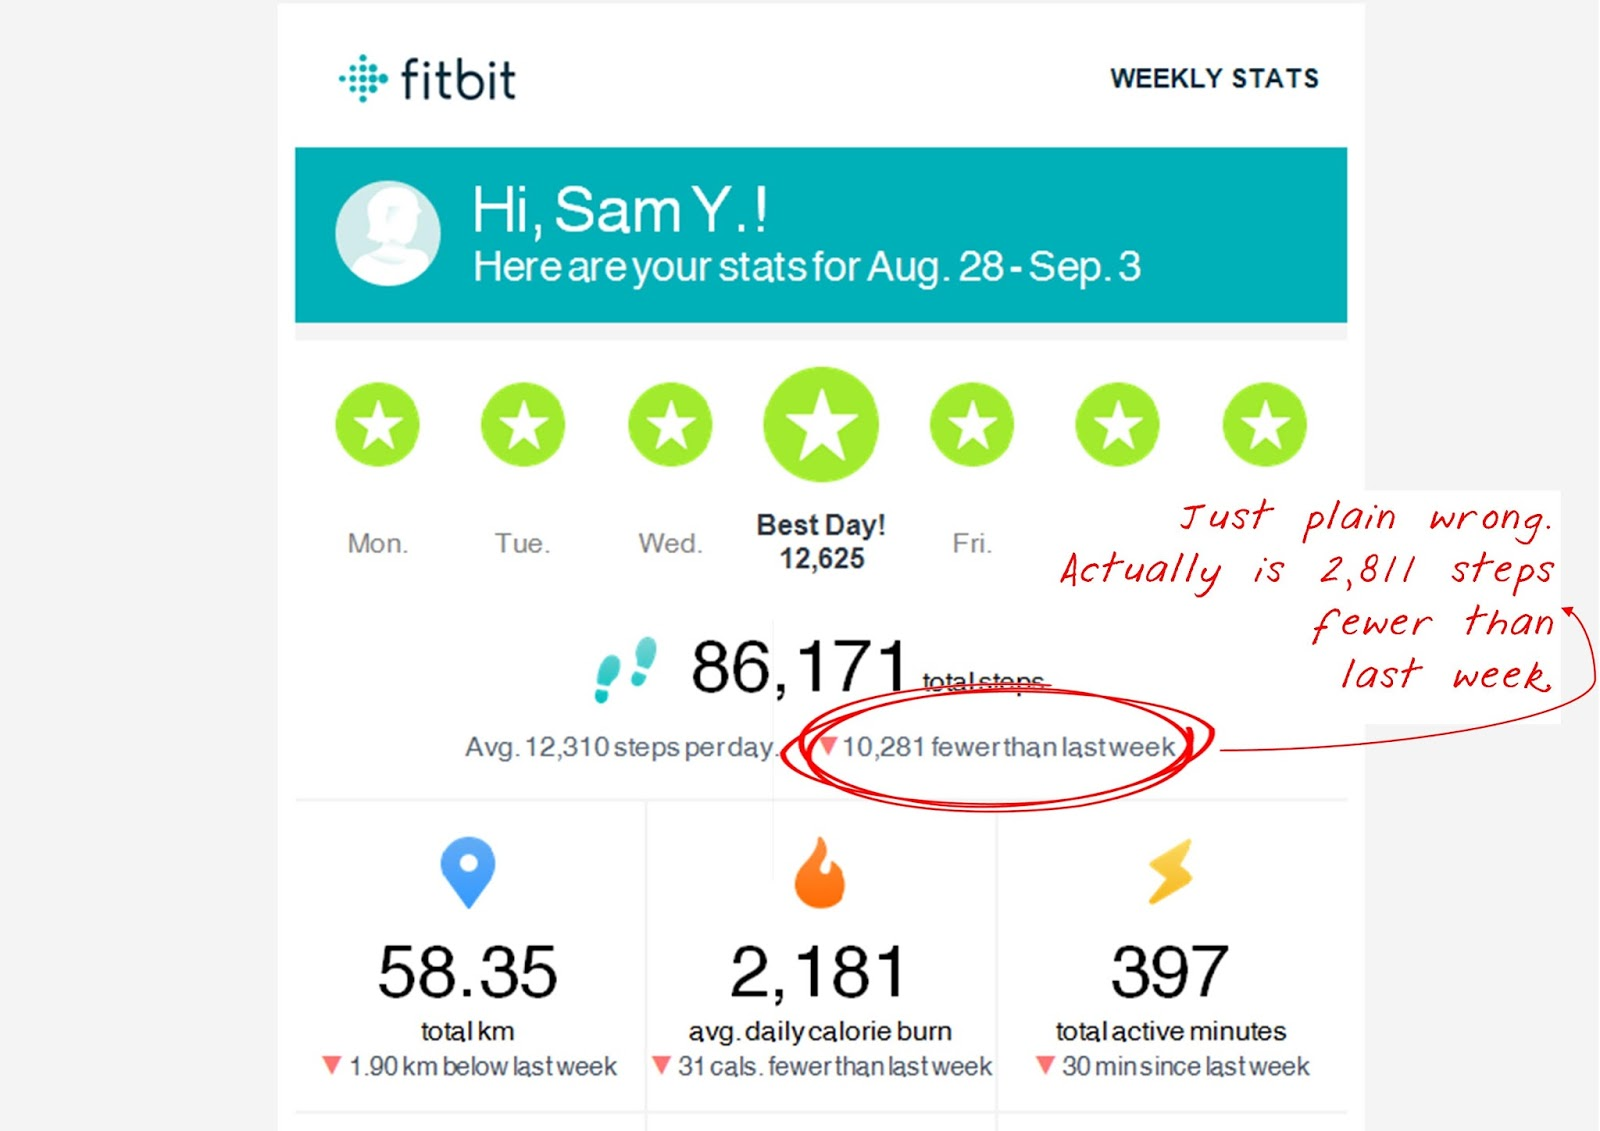 Acts of Leadership: Exporting Fitbit Data